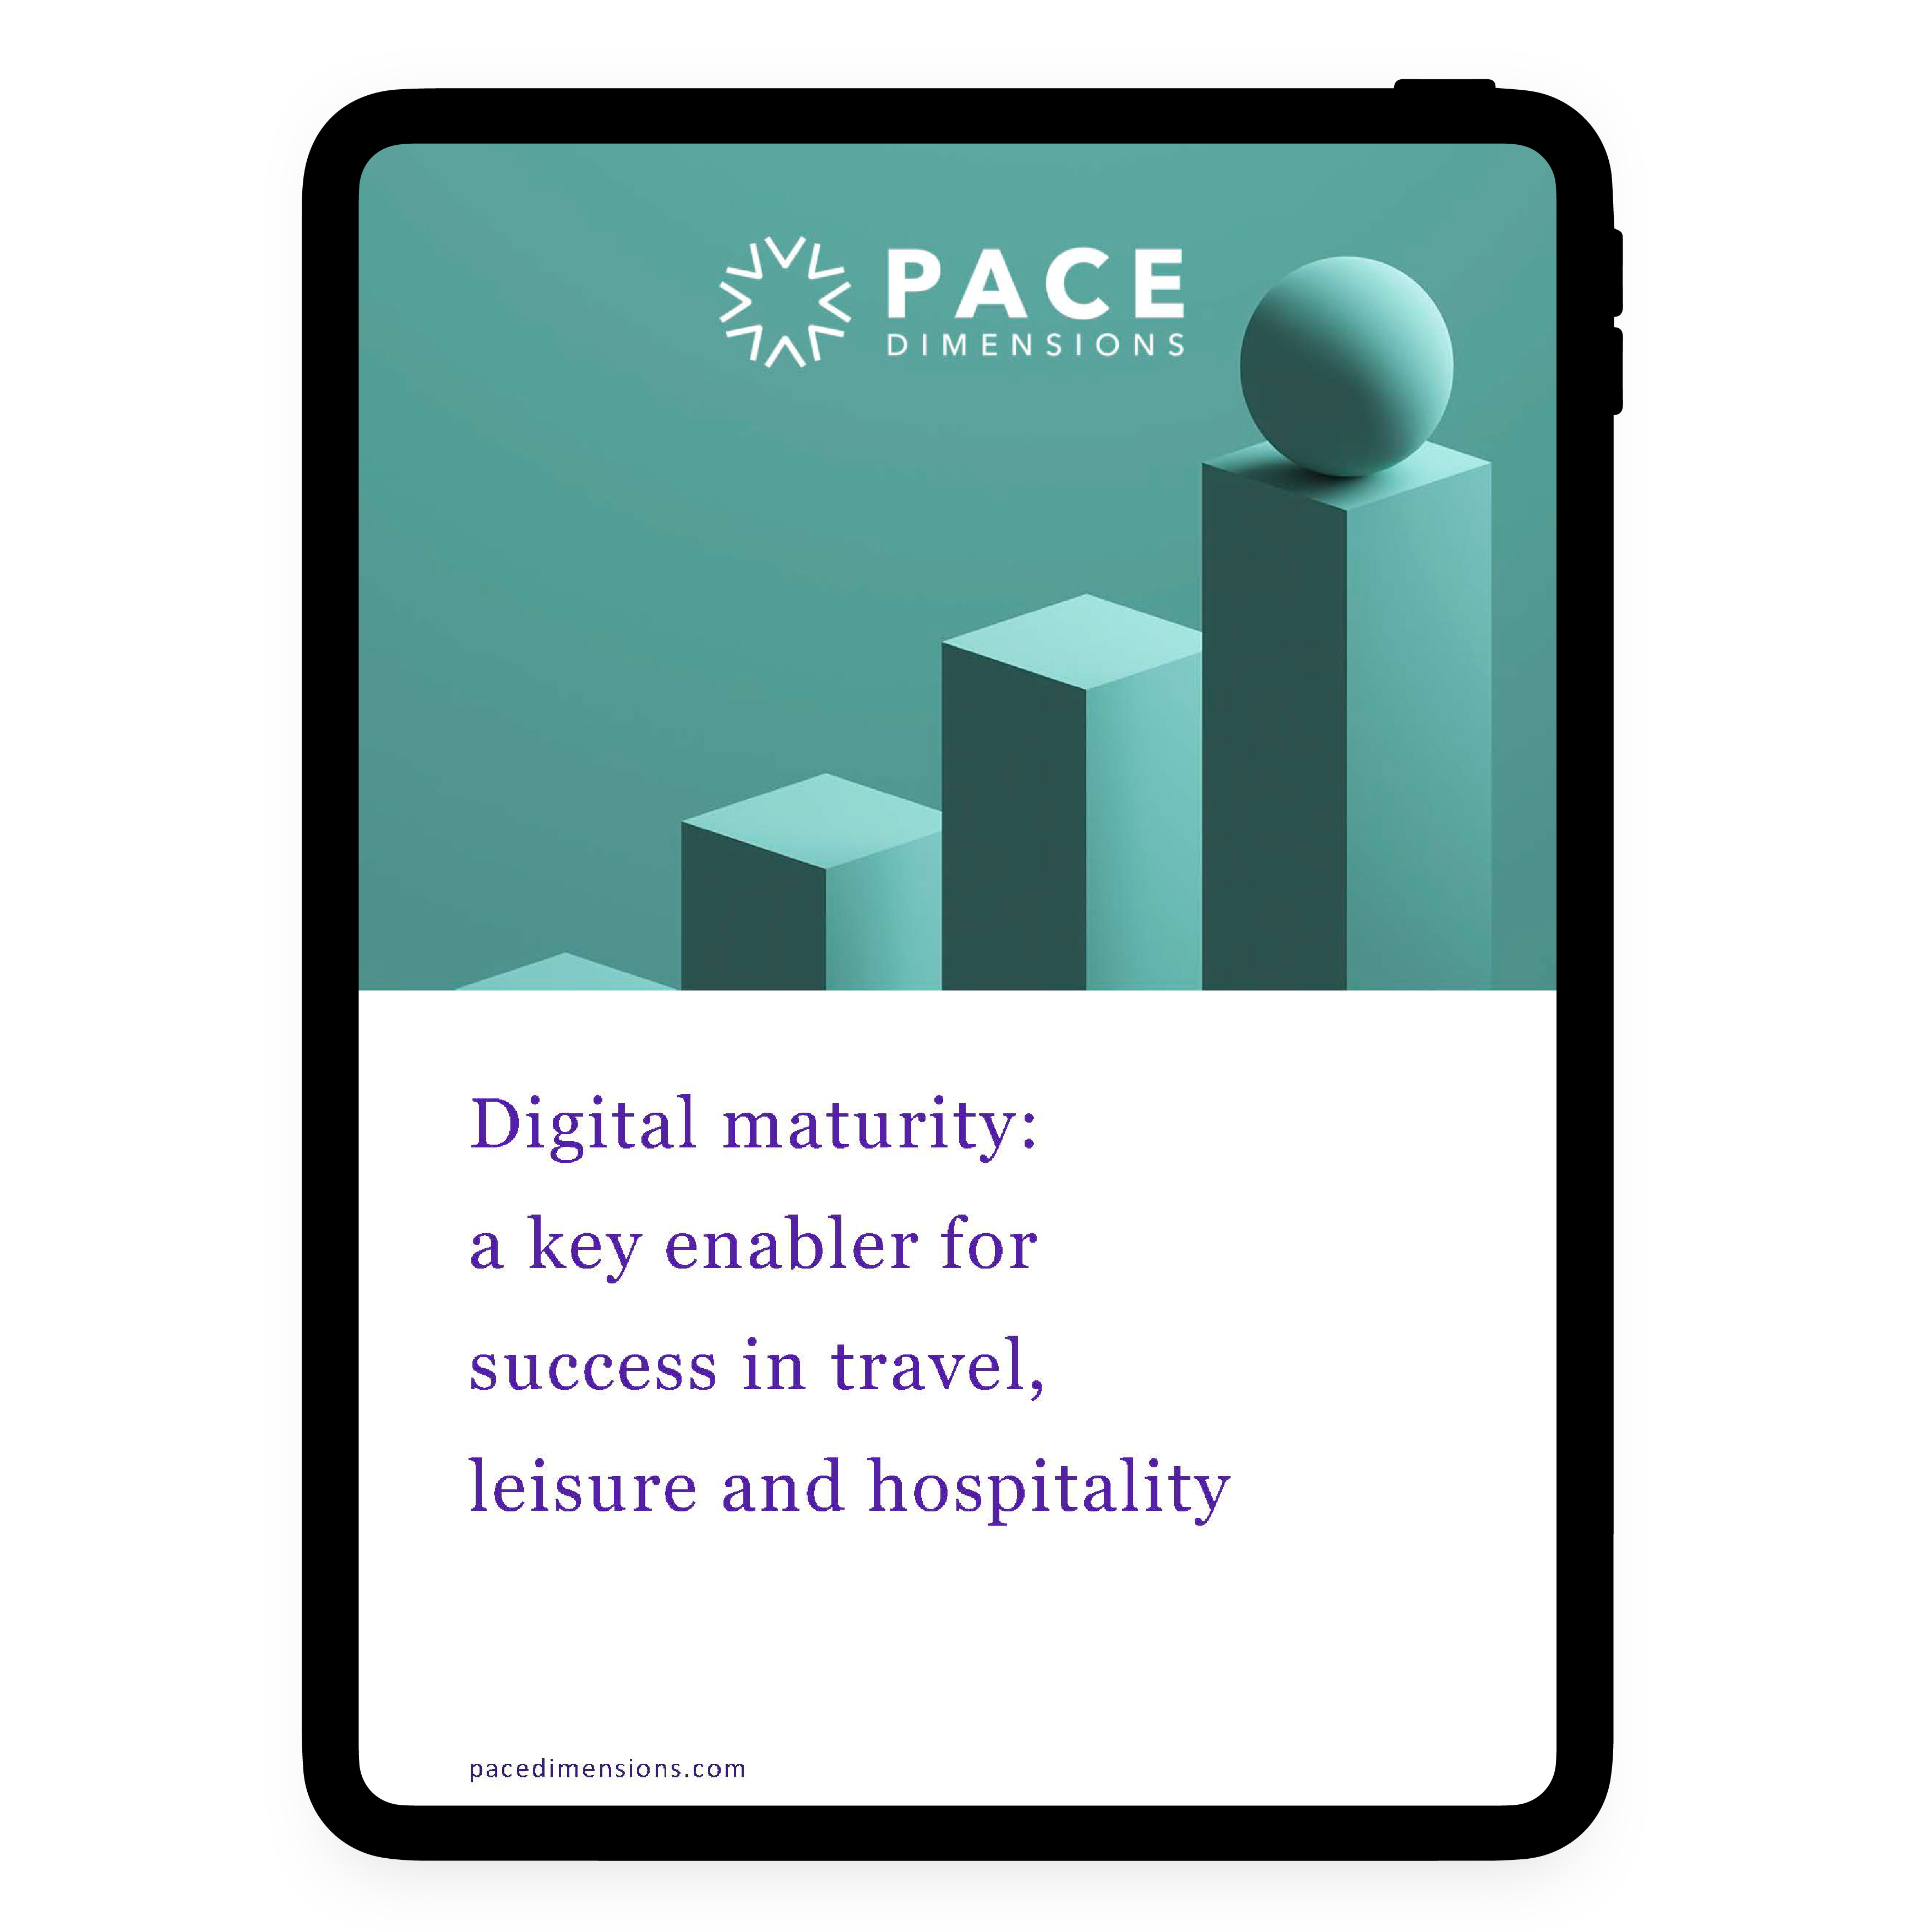 S8_PACE Dimensions_White Paper_Ipad_Template-03 (2)